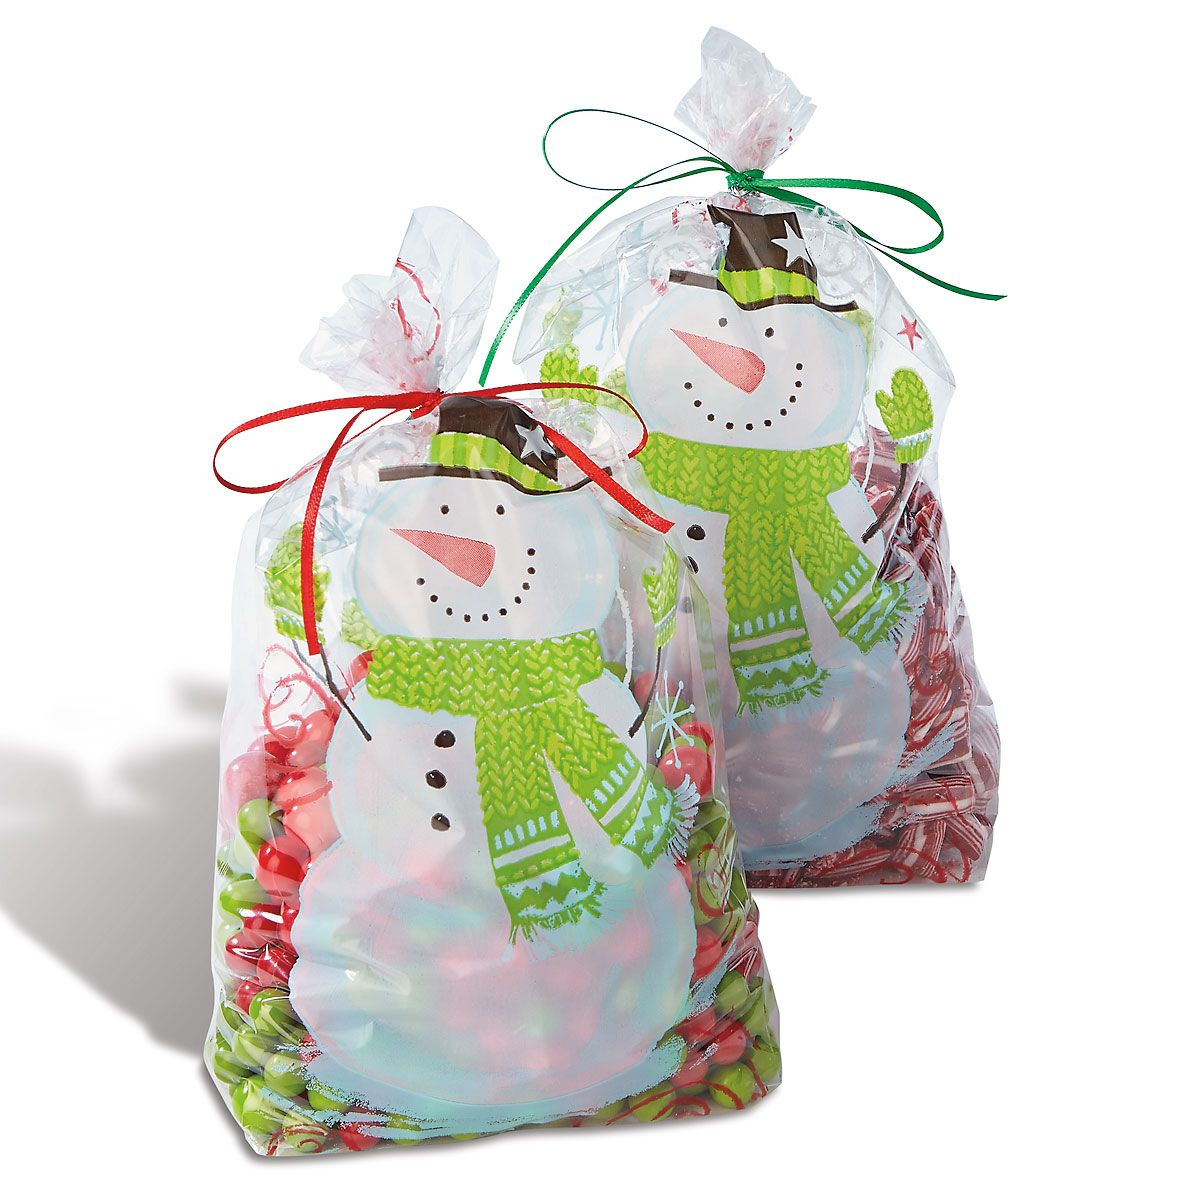 Snowman Swirl Treat Bags